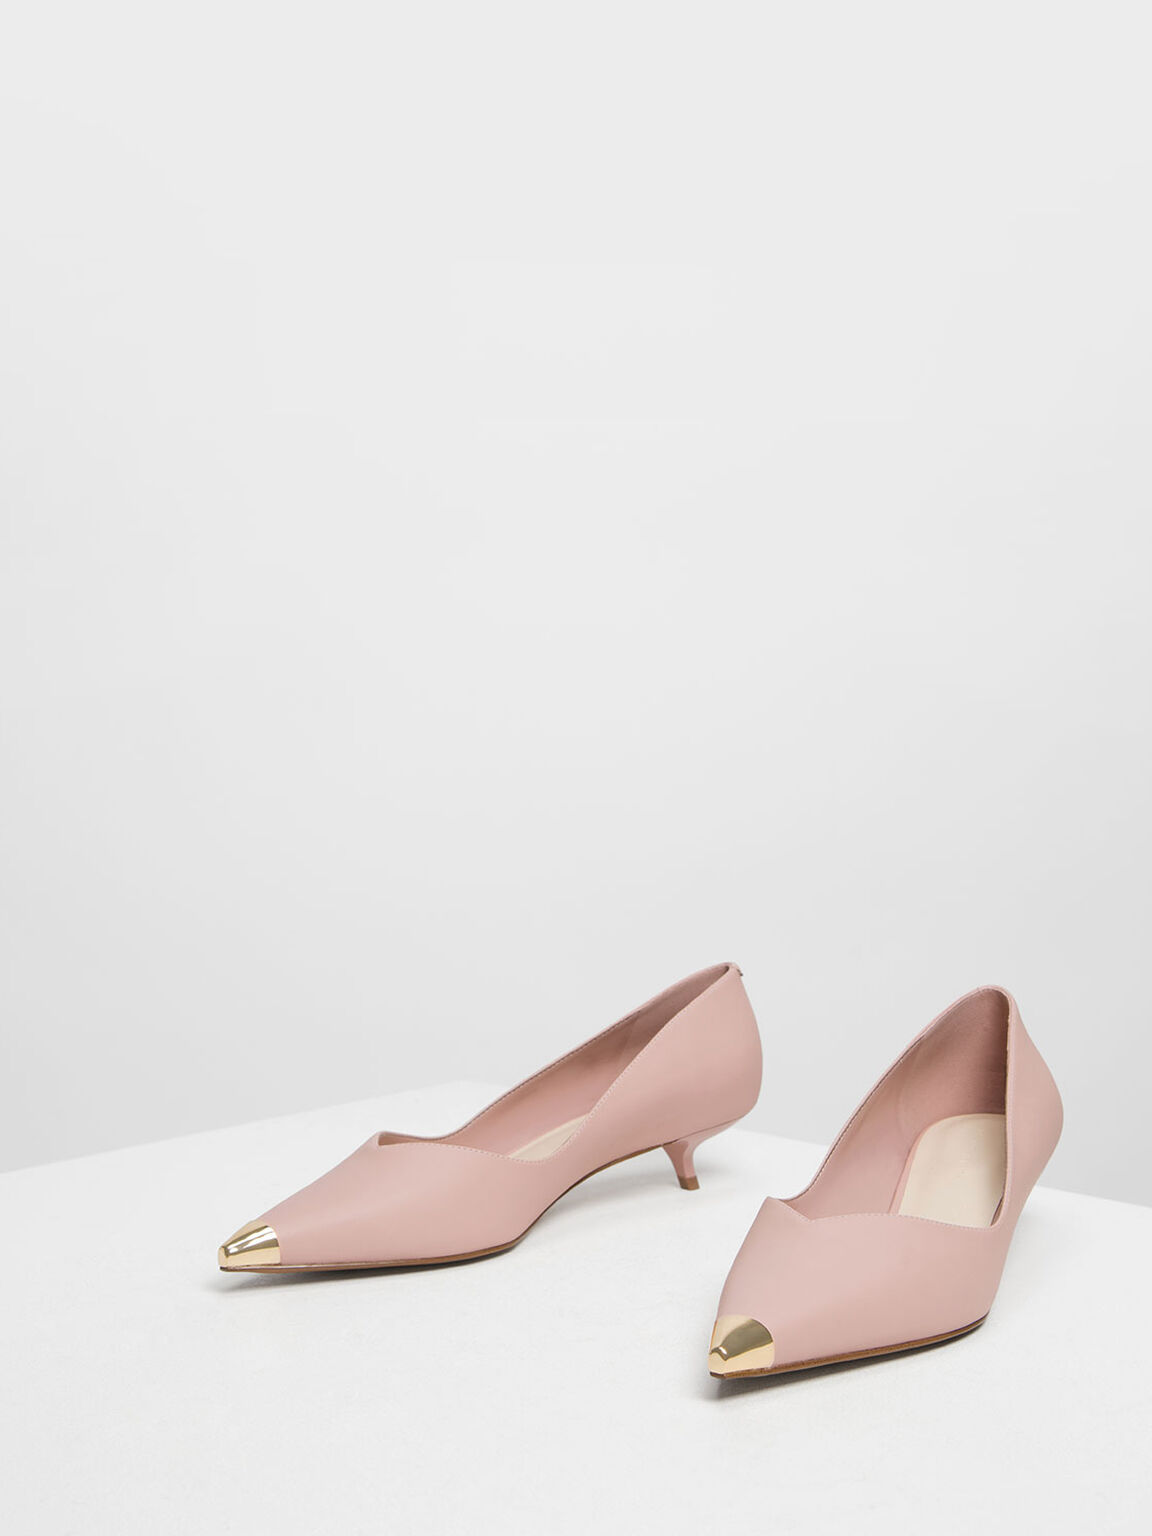 Gold Metallic Tip Kitten Heel Pumps, Nude, hi-res